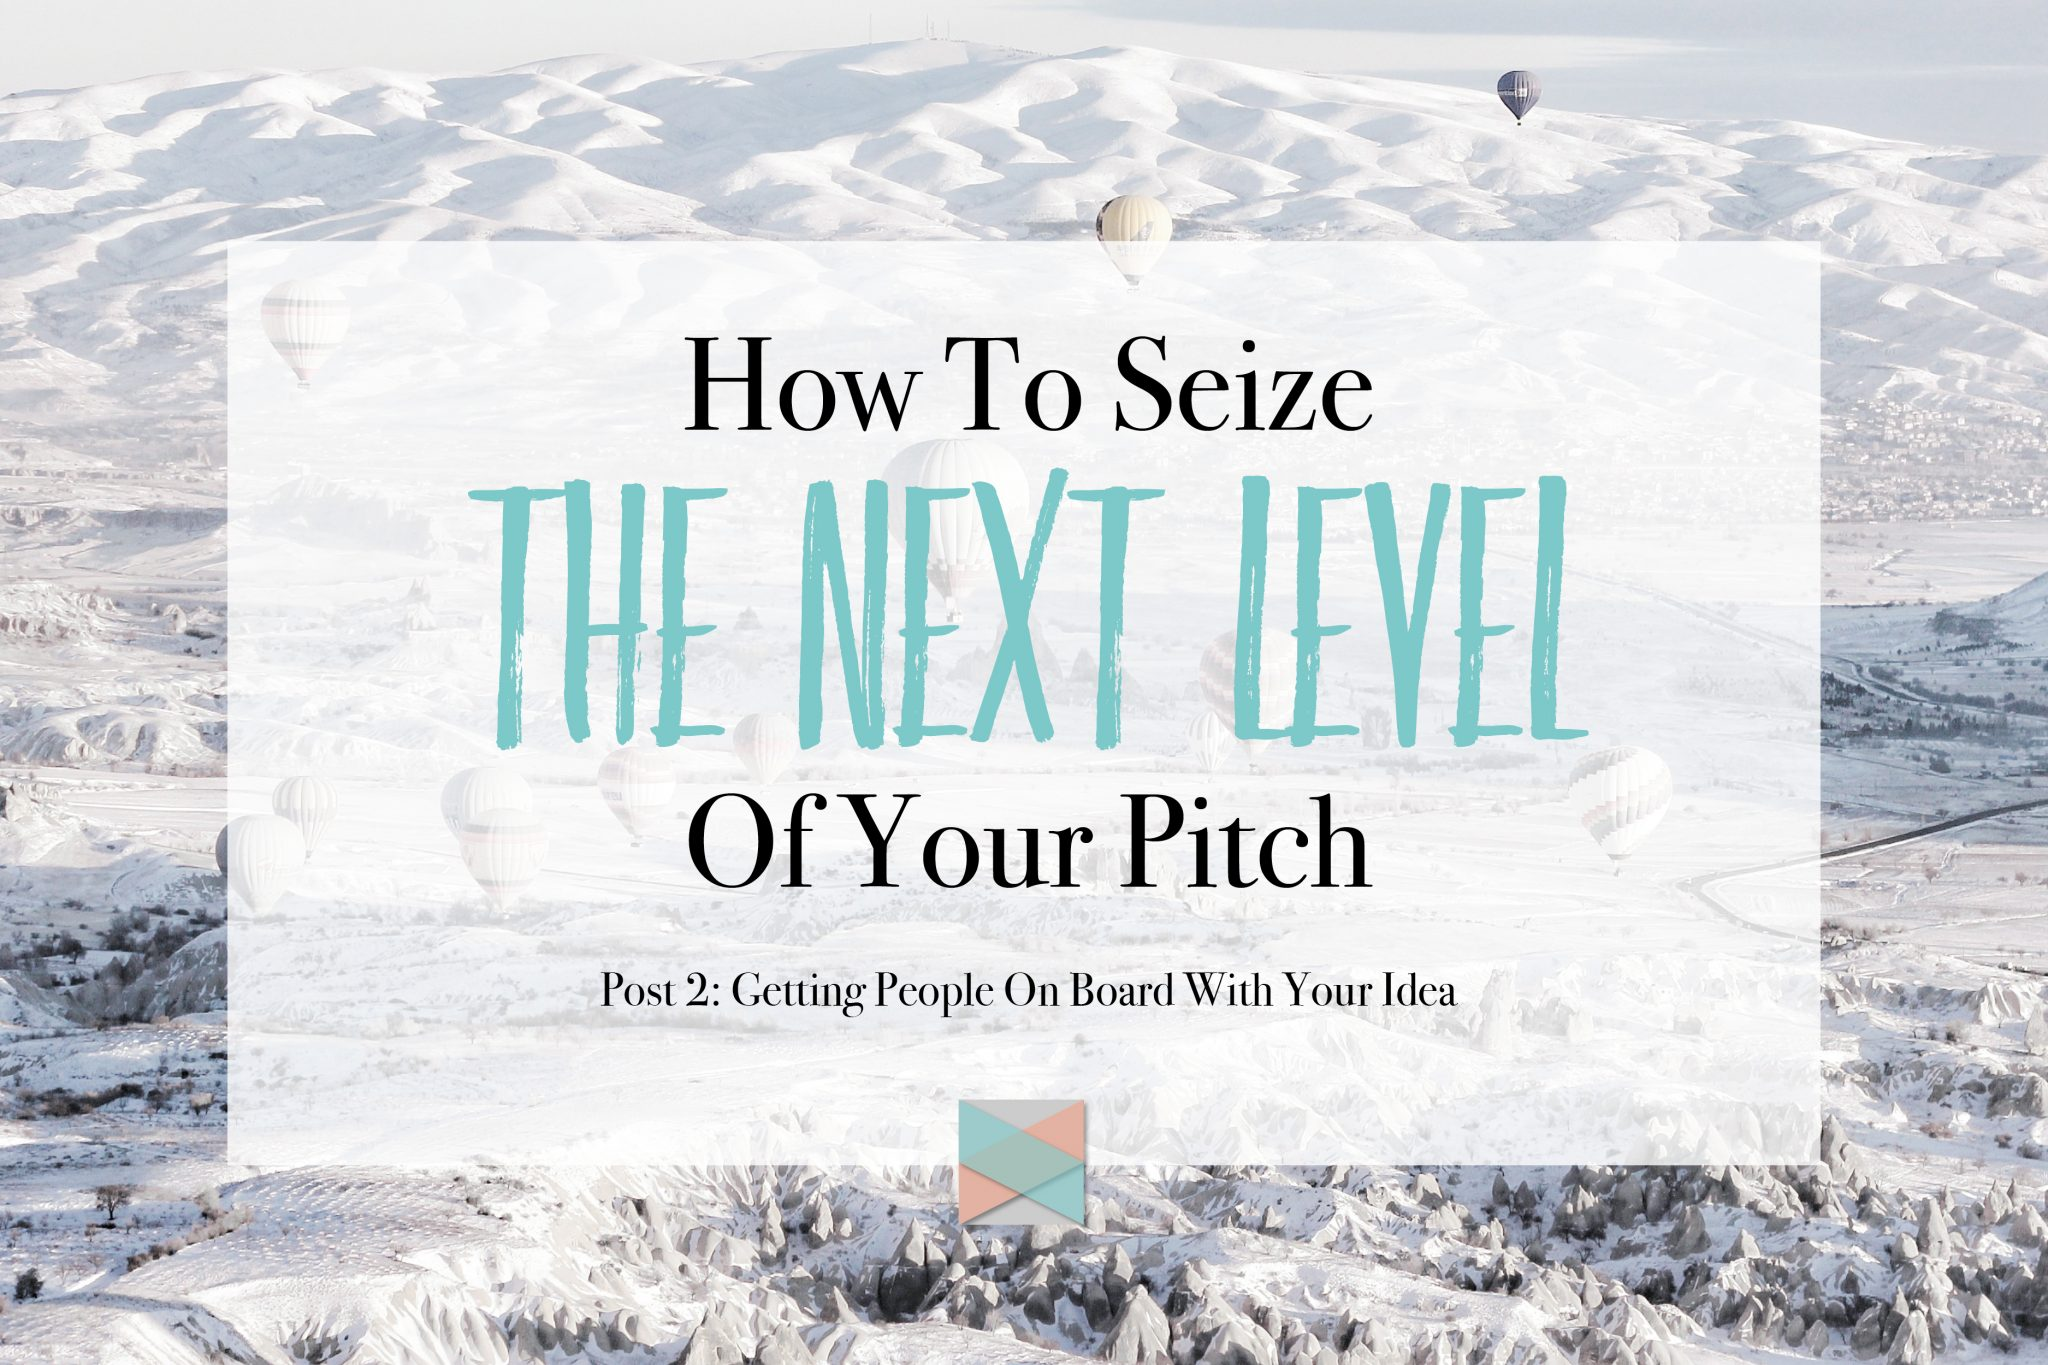 How To Seize The Next Level Of Your Pitch - Learn how to get people on board with your idea   www.vikingandamish.com